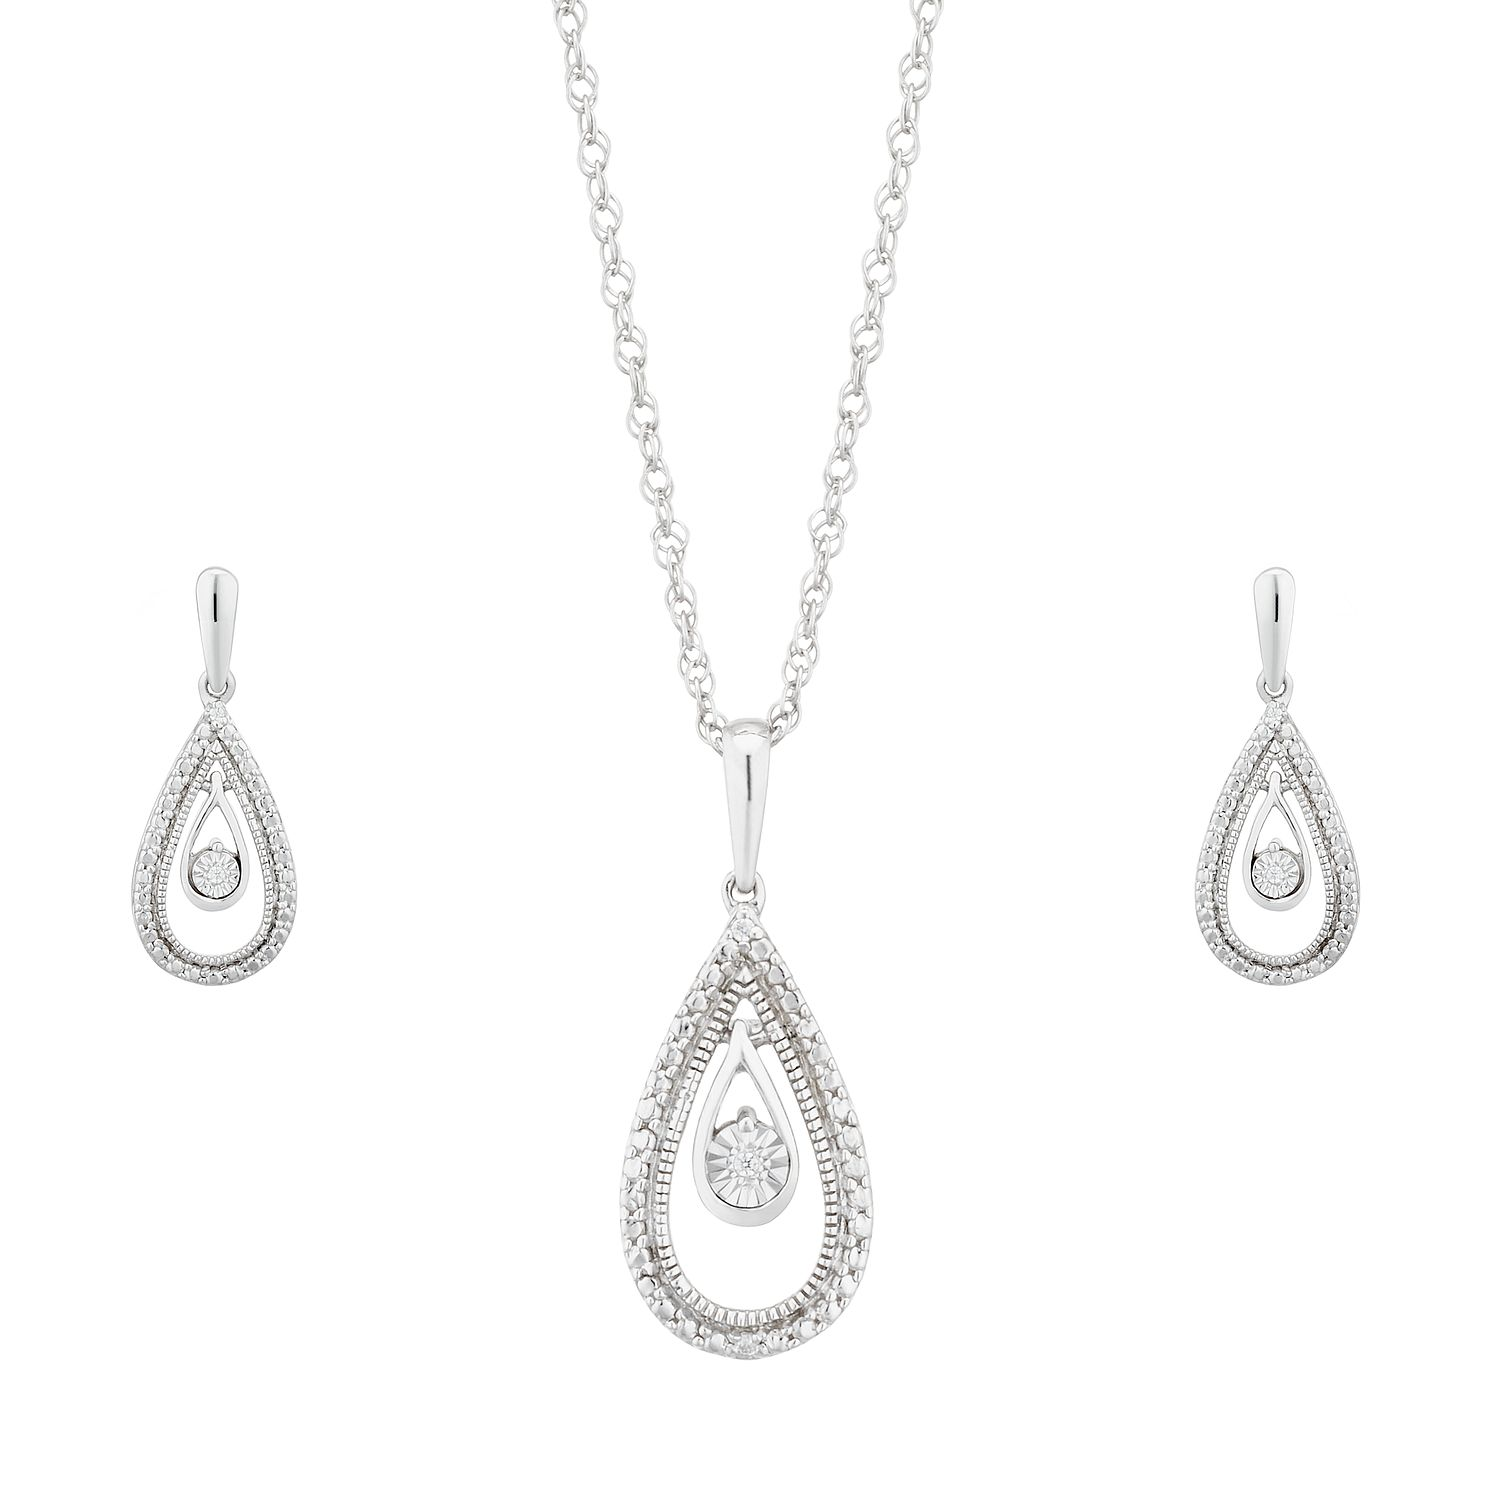 Silver Pendant Pear Drop Jewellery Gift Set - Product number 1023381